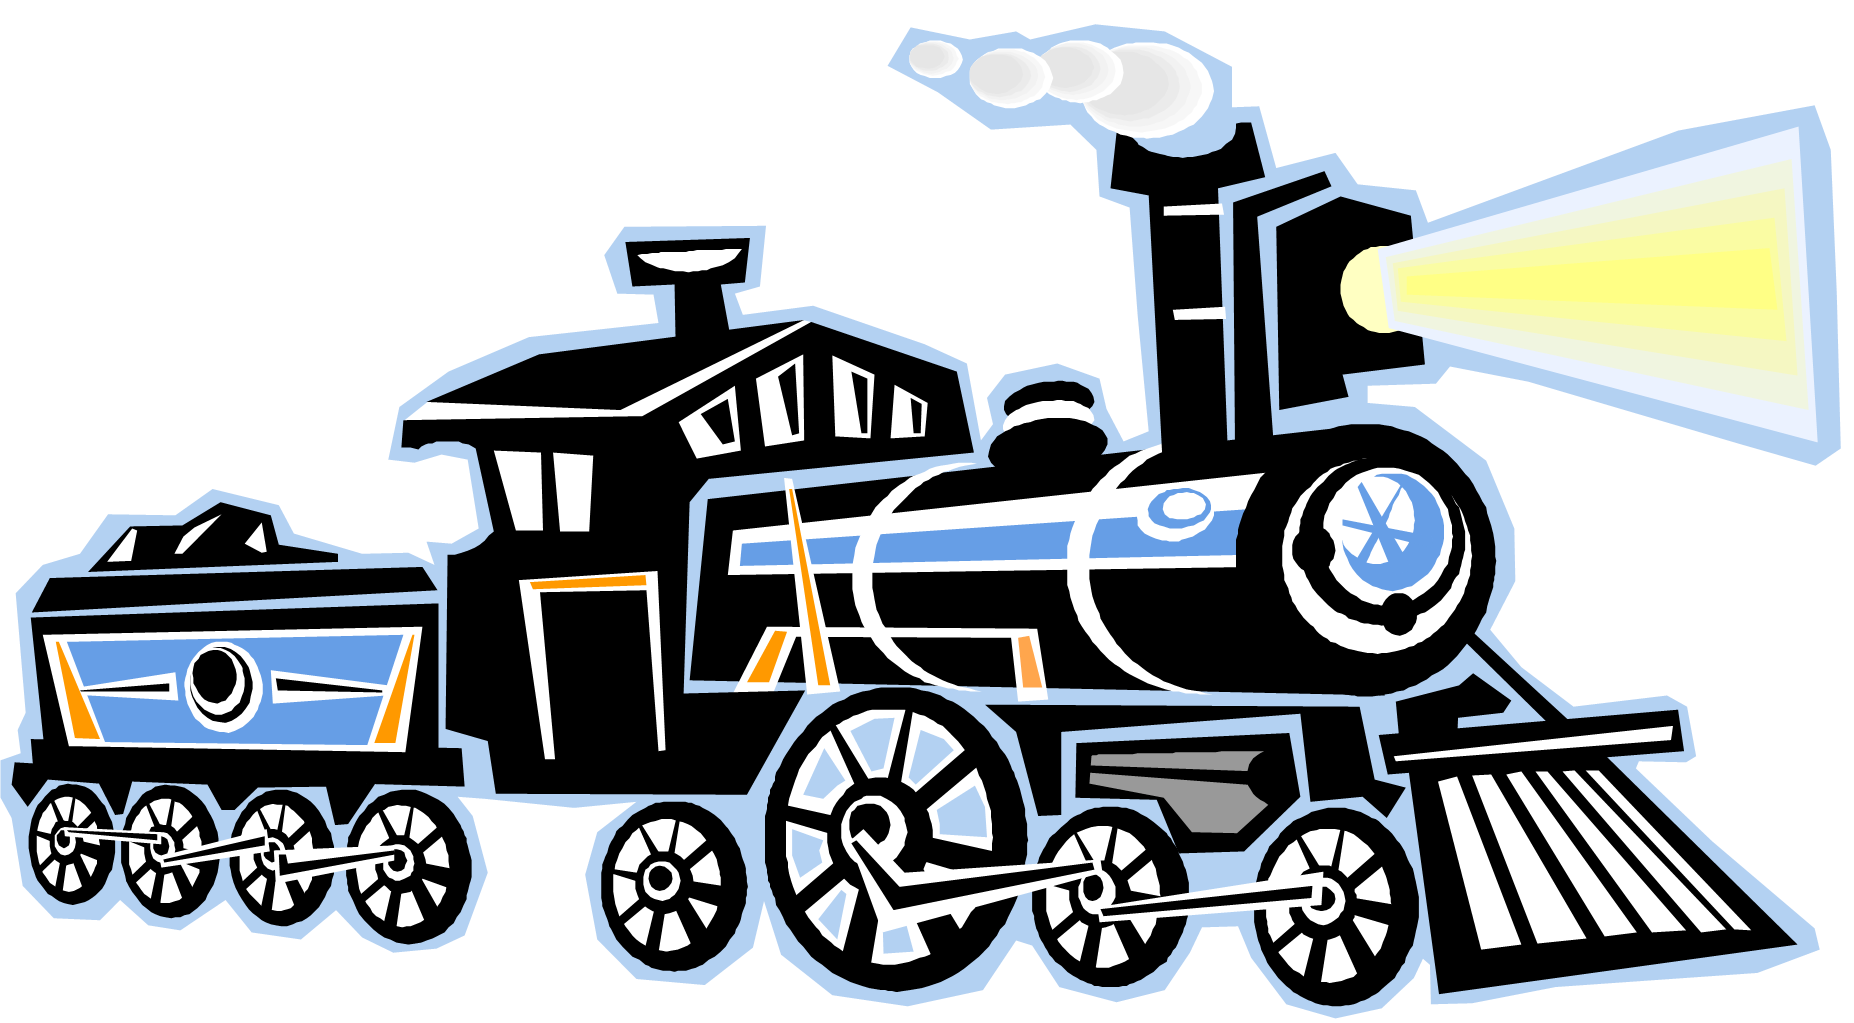 Steam animated transparent clipart.